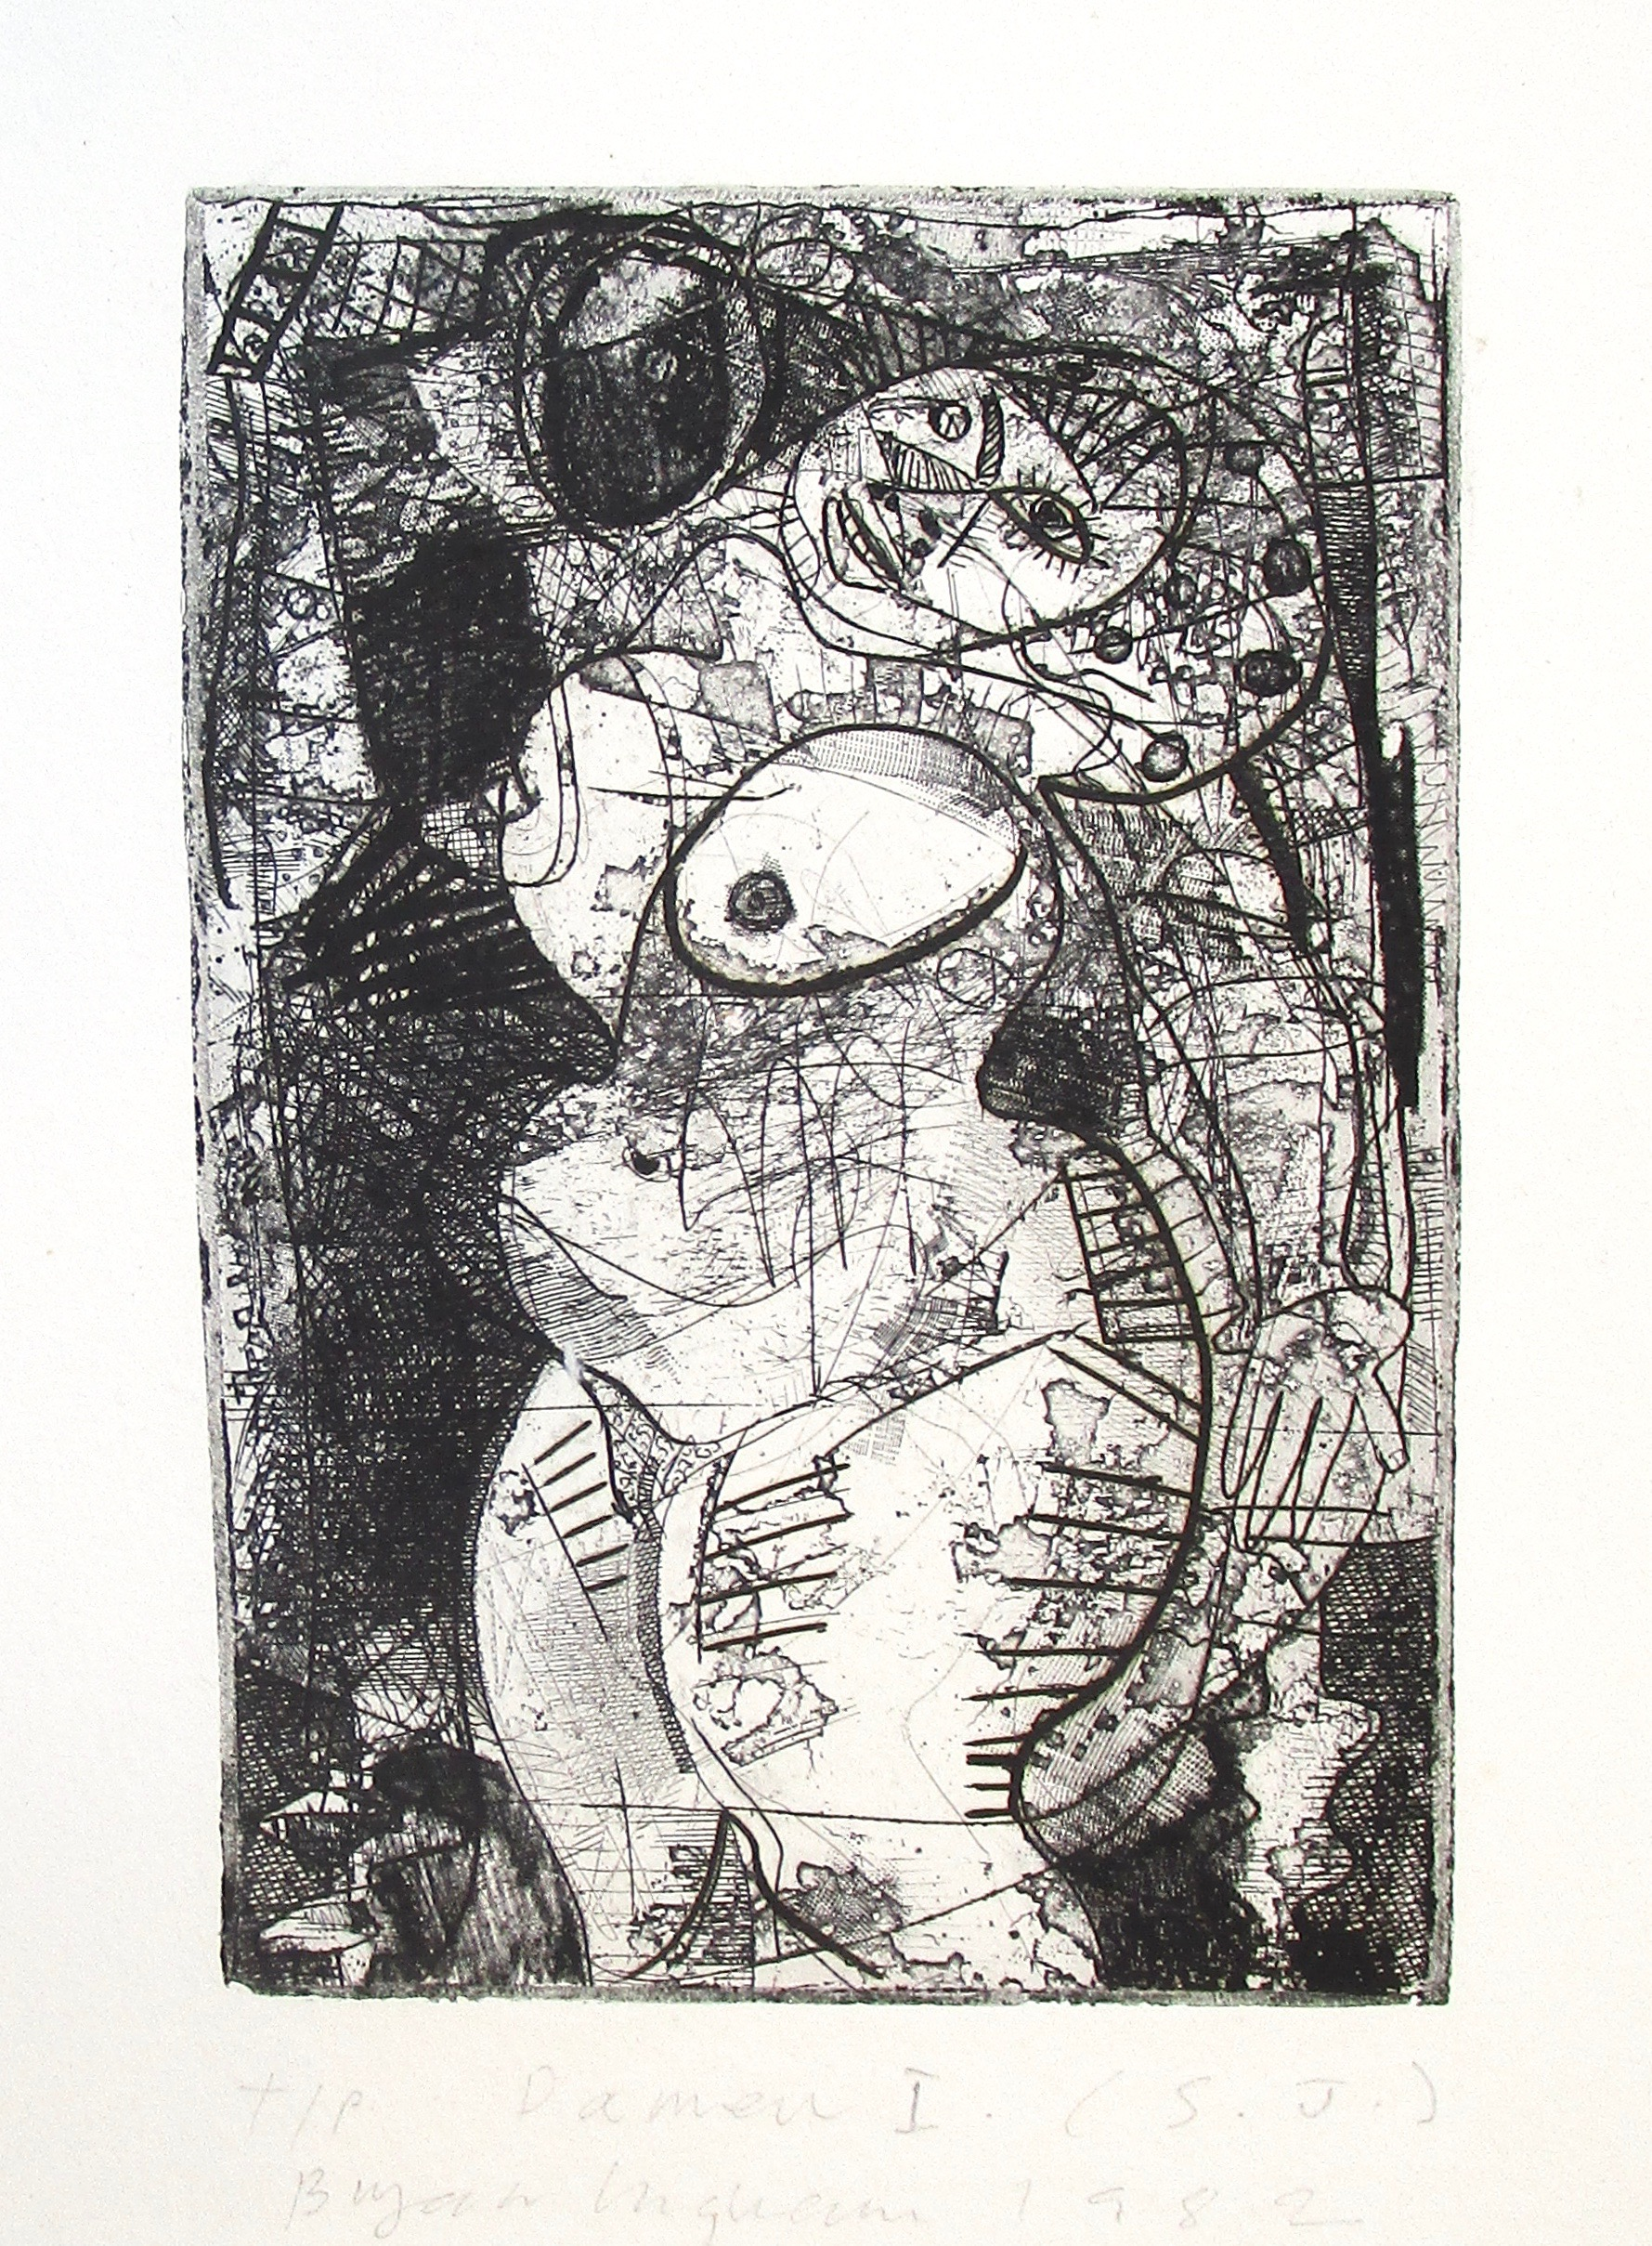 BRYAN INGHAM [1936-1997]. Damen I, 1982. Etching on wove paper. Signed, inscribed with title,